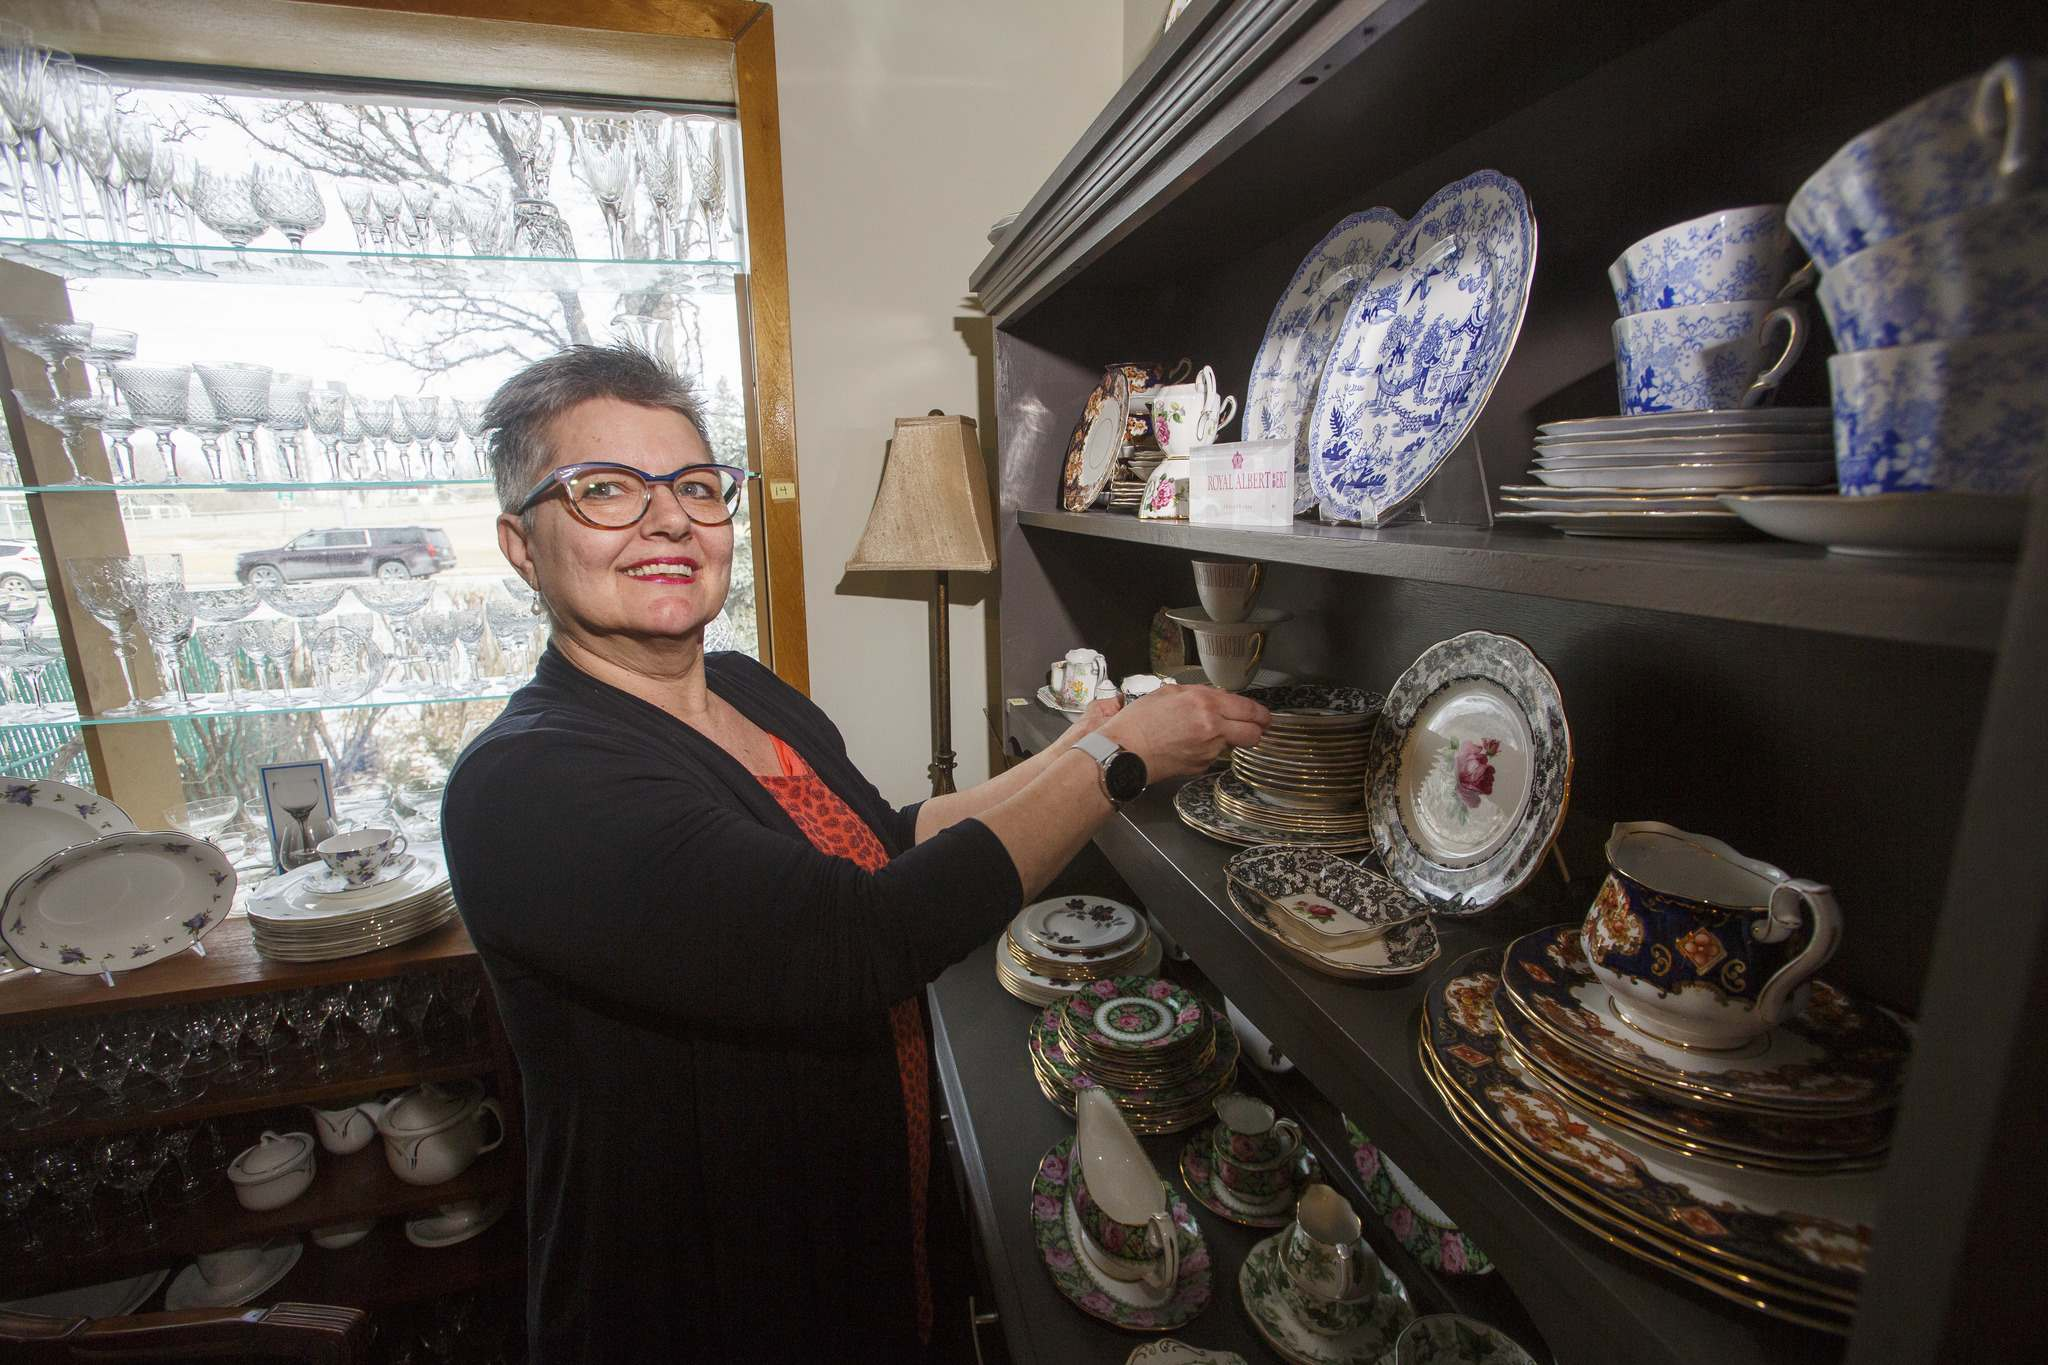 Perkins has inventory filling almost every room of her home-based business. (Mike Deal / Winnipeg Free Press)</p>